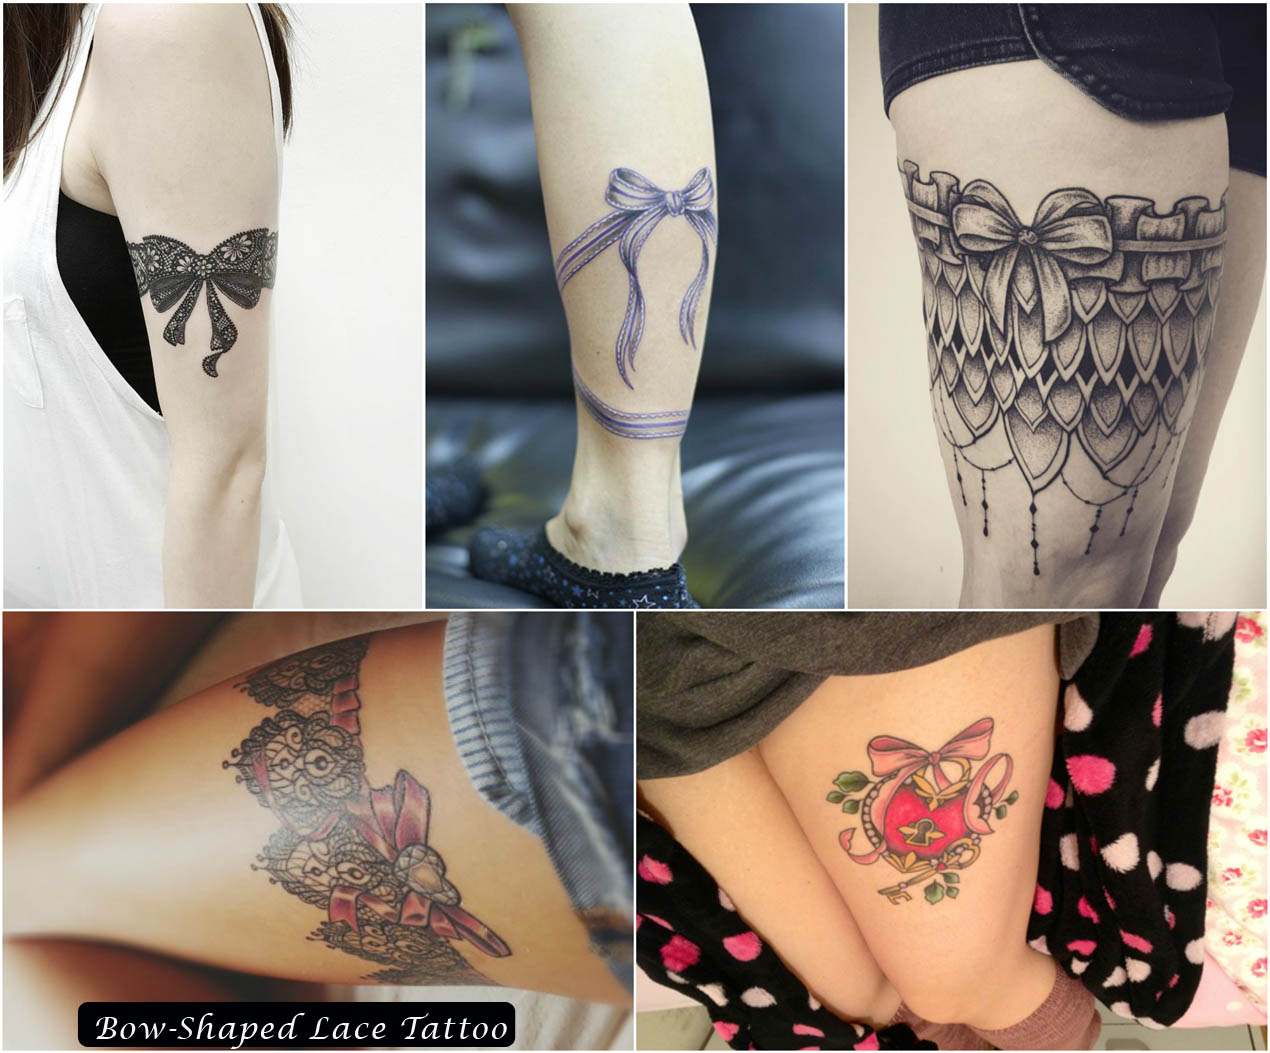 Bow-Shaped Lace Tattoo